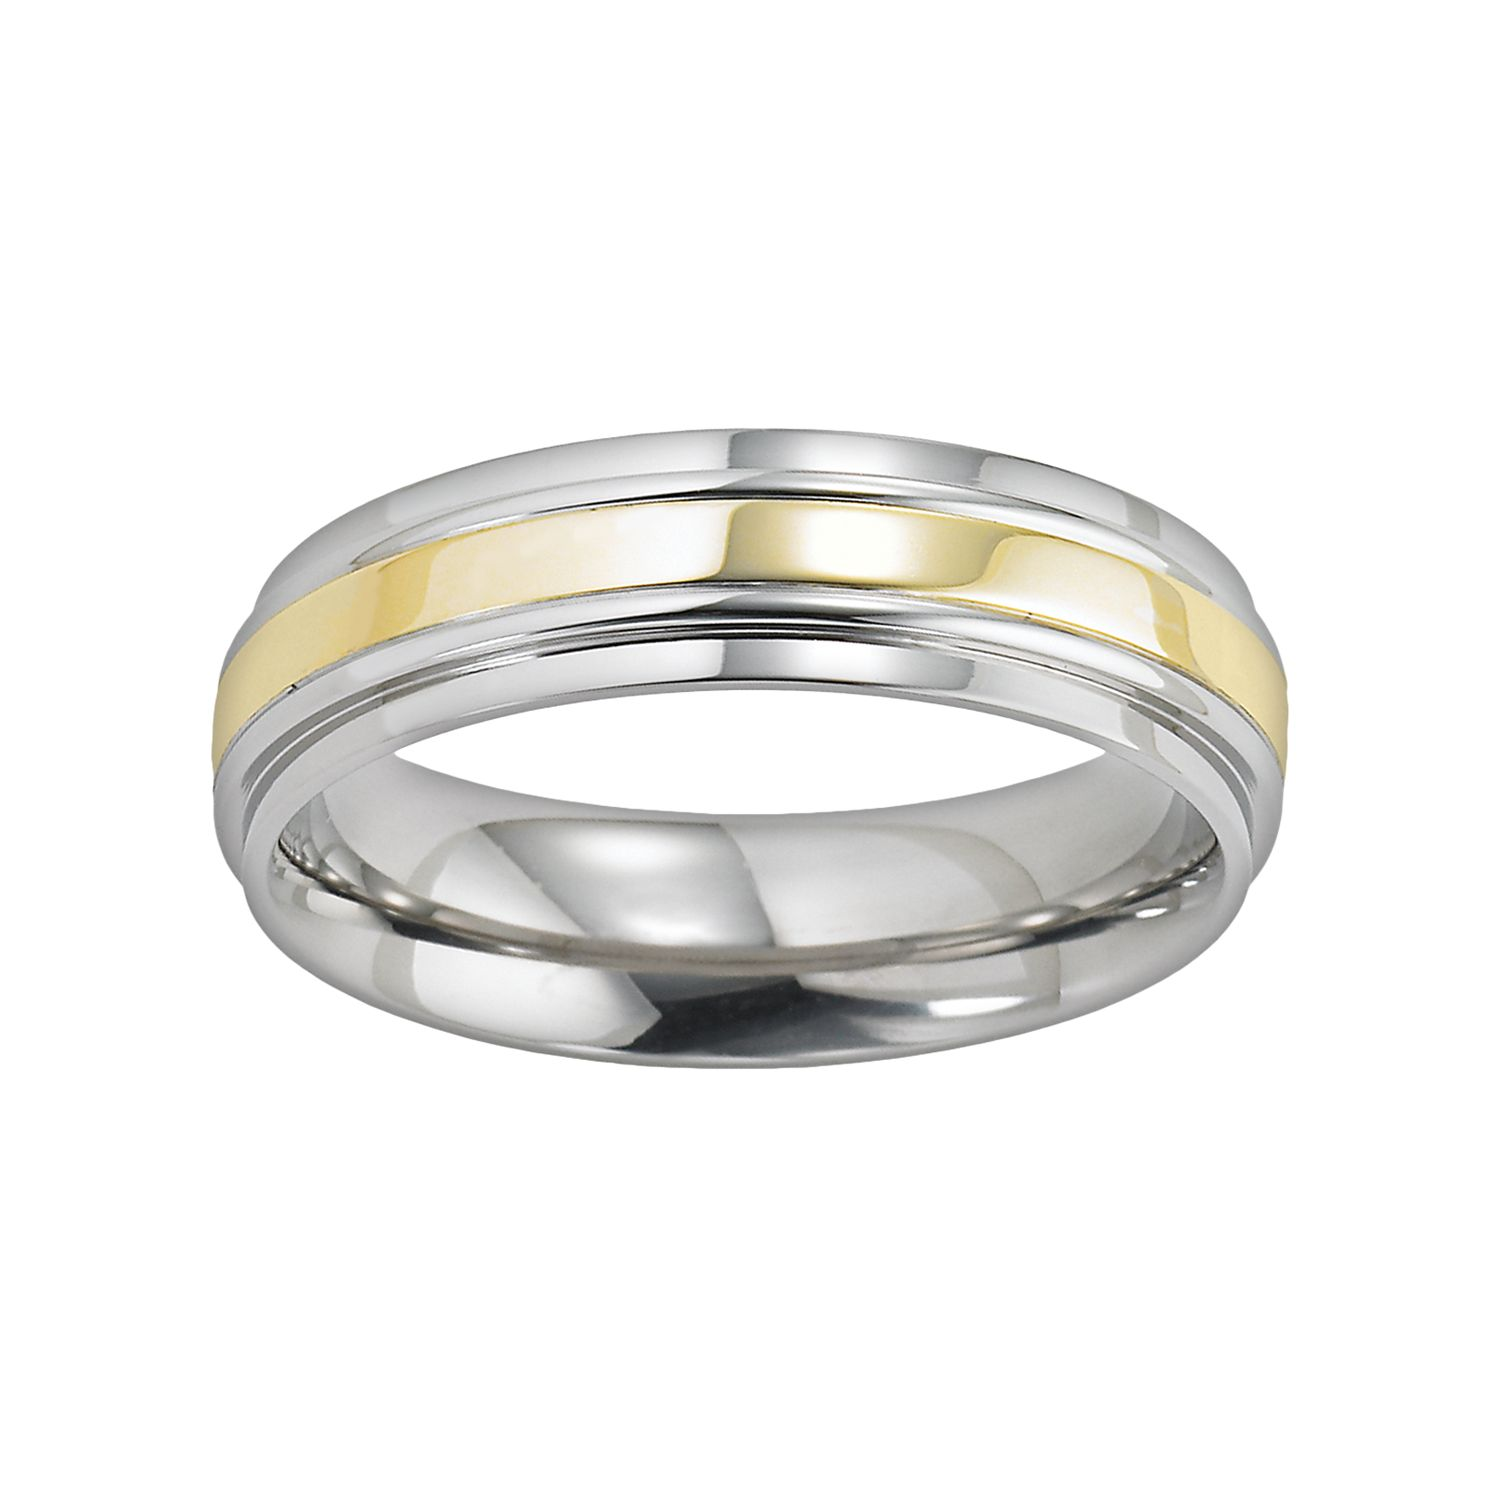 Mens Wedding Bands Kohls